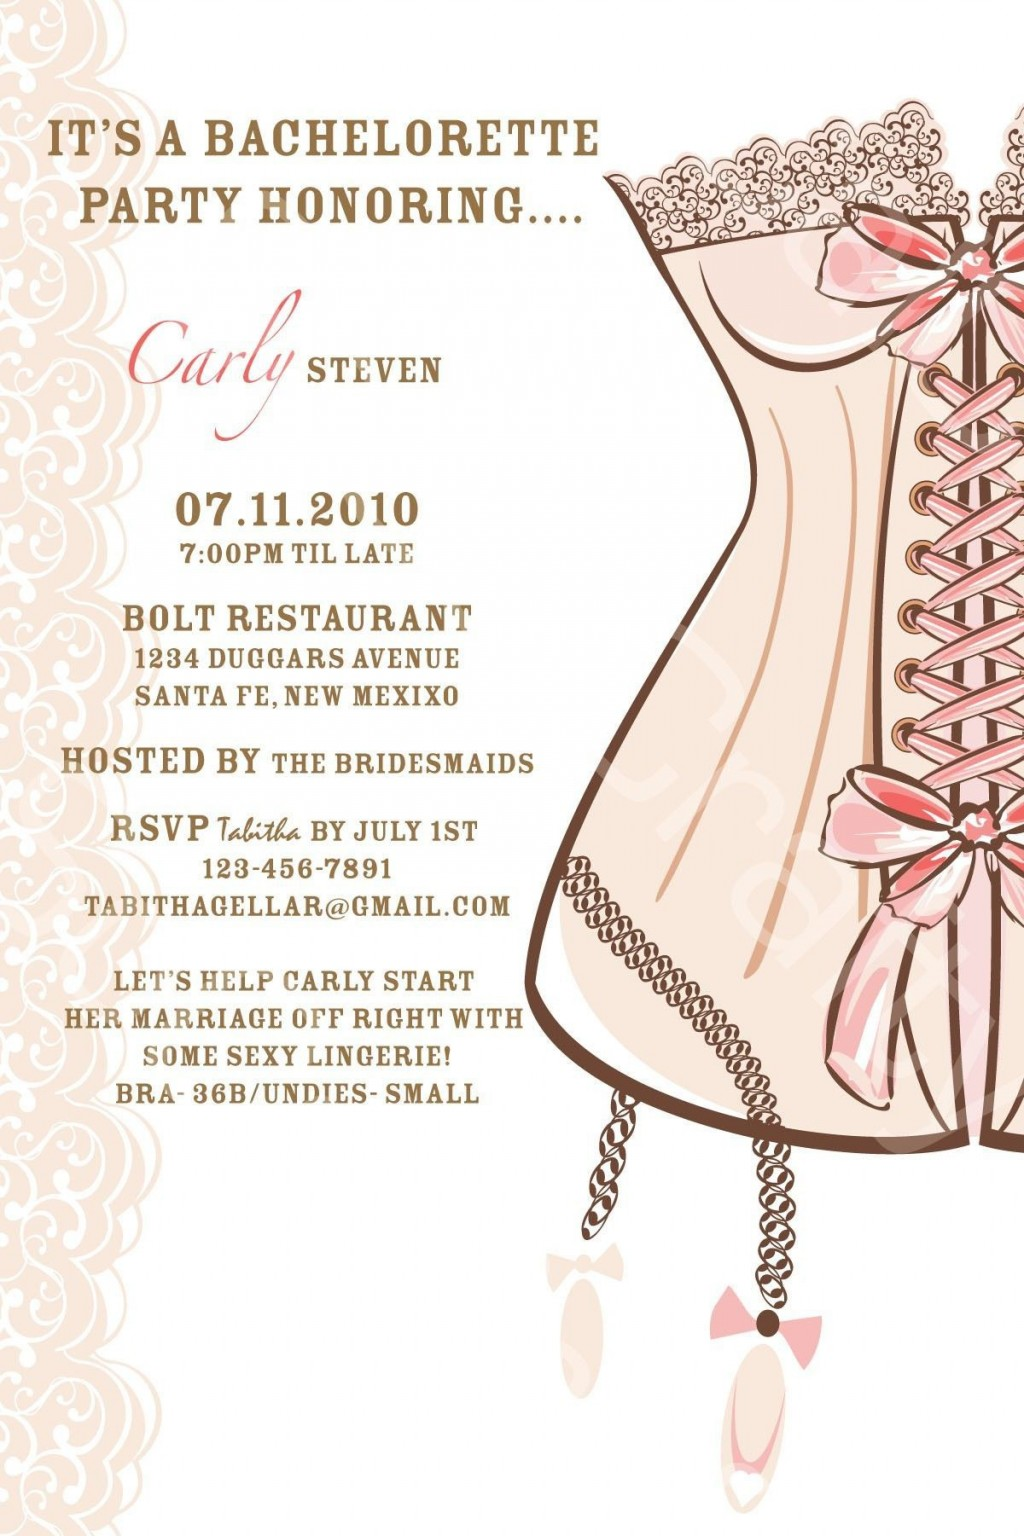 004 Fantastic Bachelorette Party Invitation Template Word Free High Definition Large